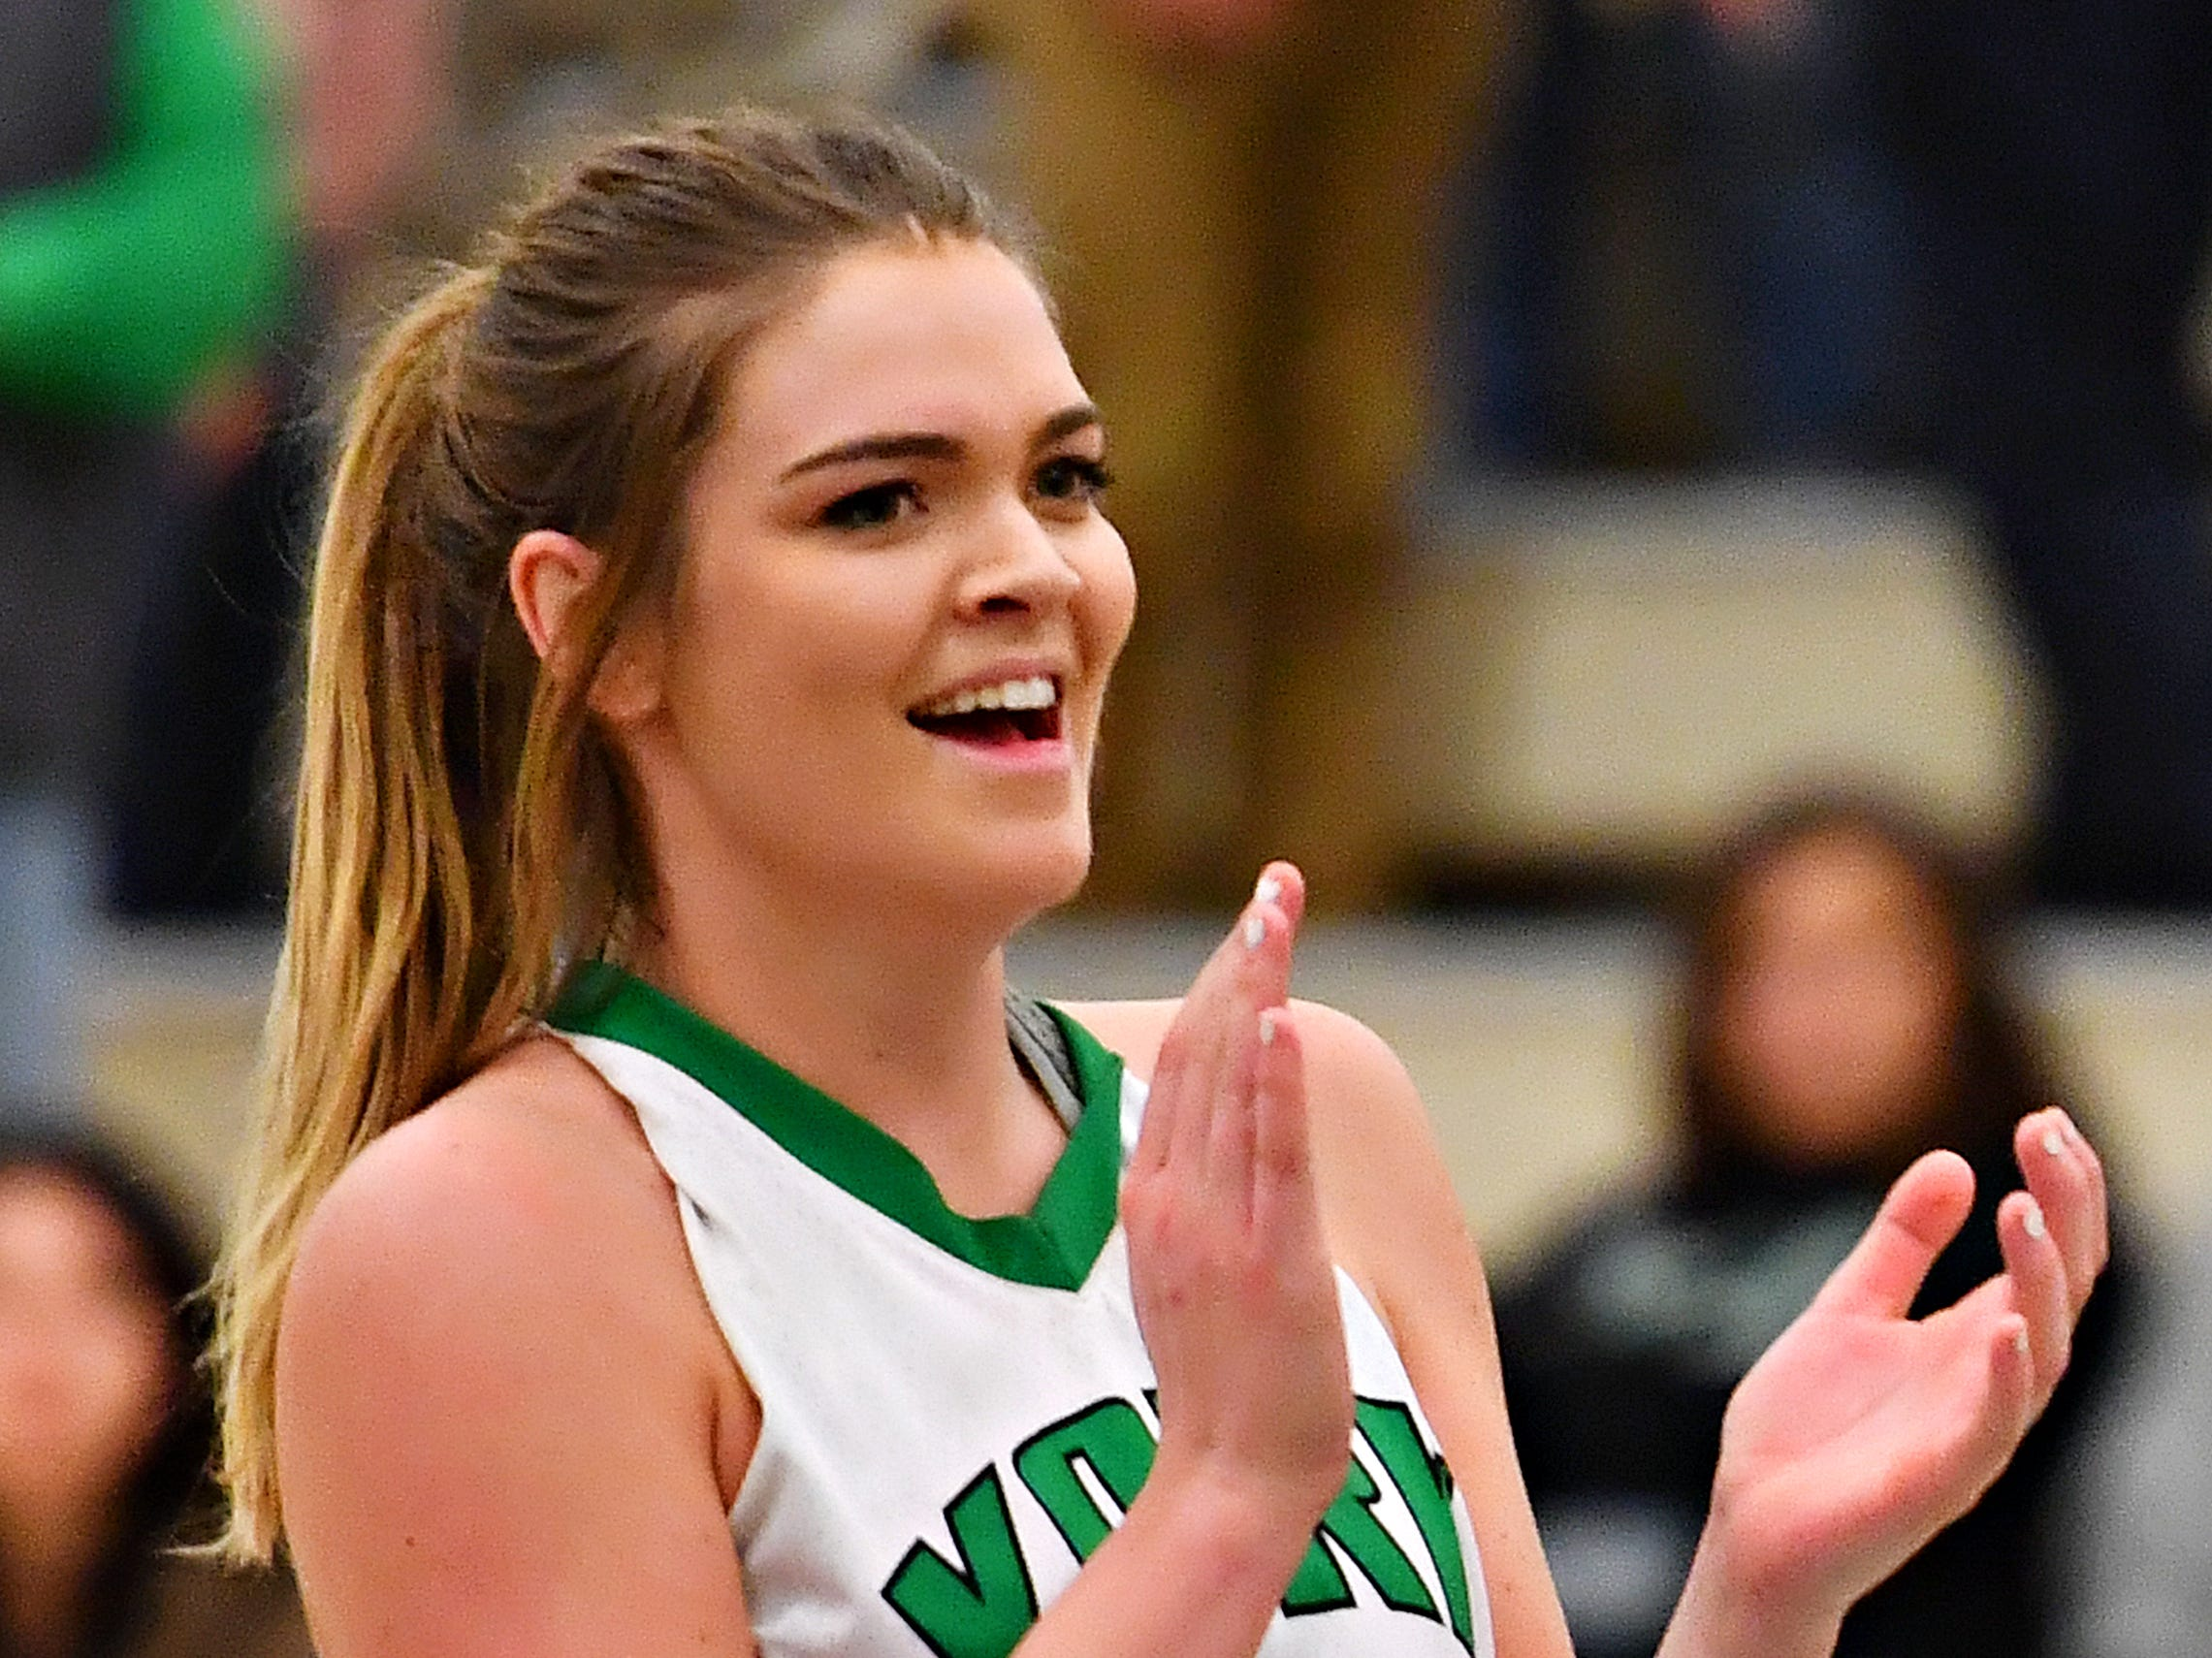 York College's Katie McGowan would score her 1000th game point during women's basketball action against Salisbury at Grumbacher Sport and Fitness Center at York College of Pennsylvania in Spring Garden Township, Wednesday, Feb. 6, 2019. York College would win the game 72-62. Dawn J. Sagert photo